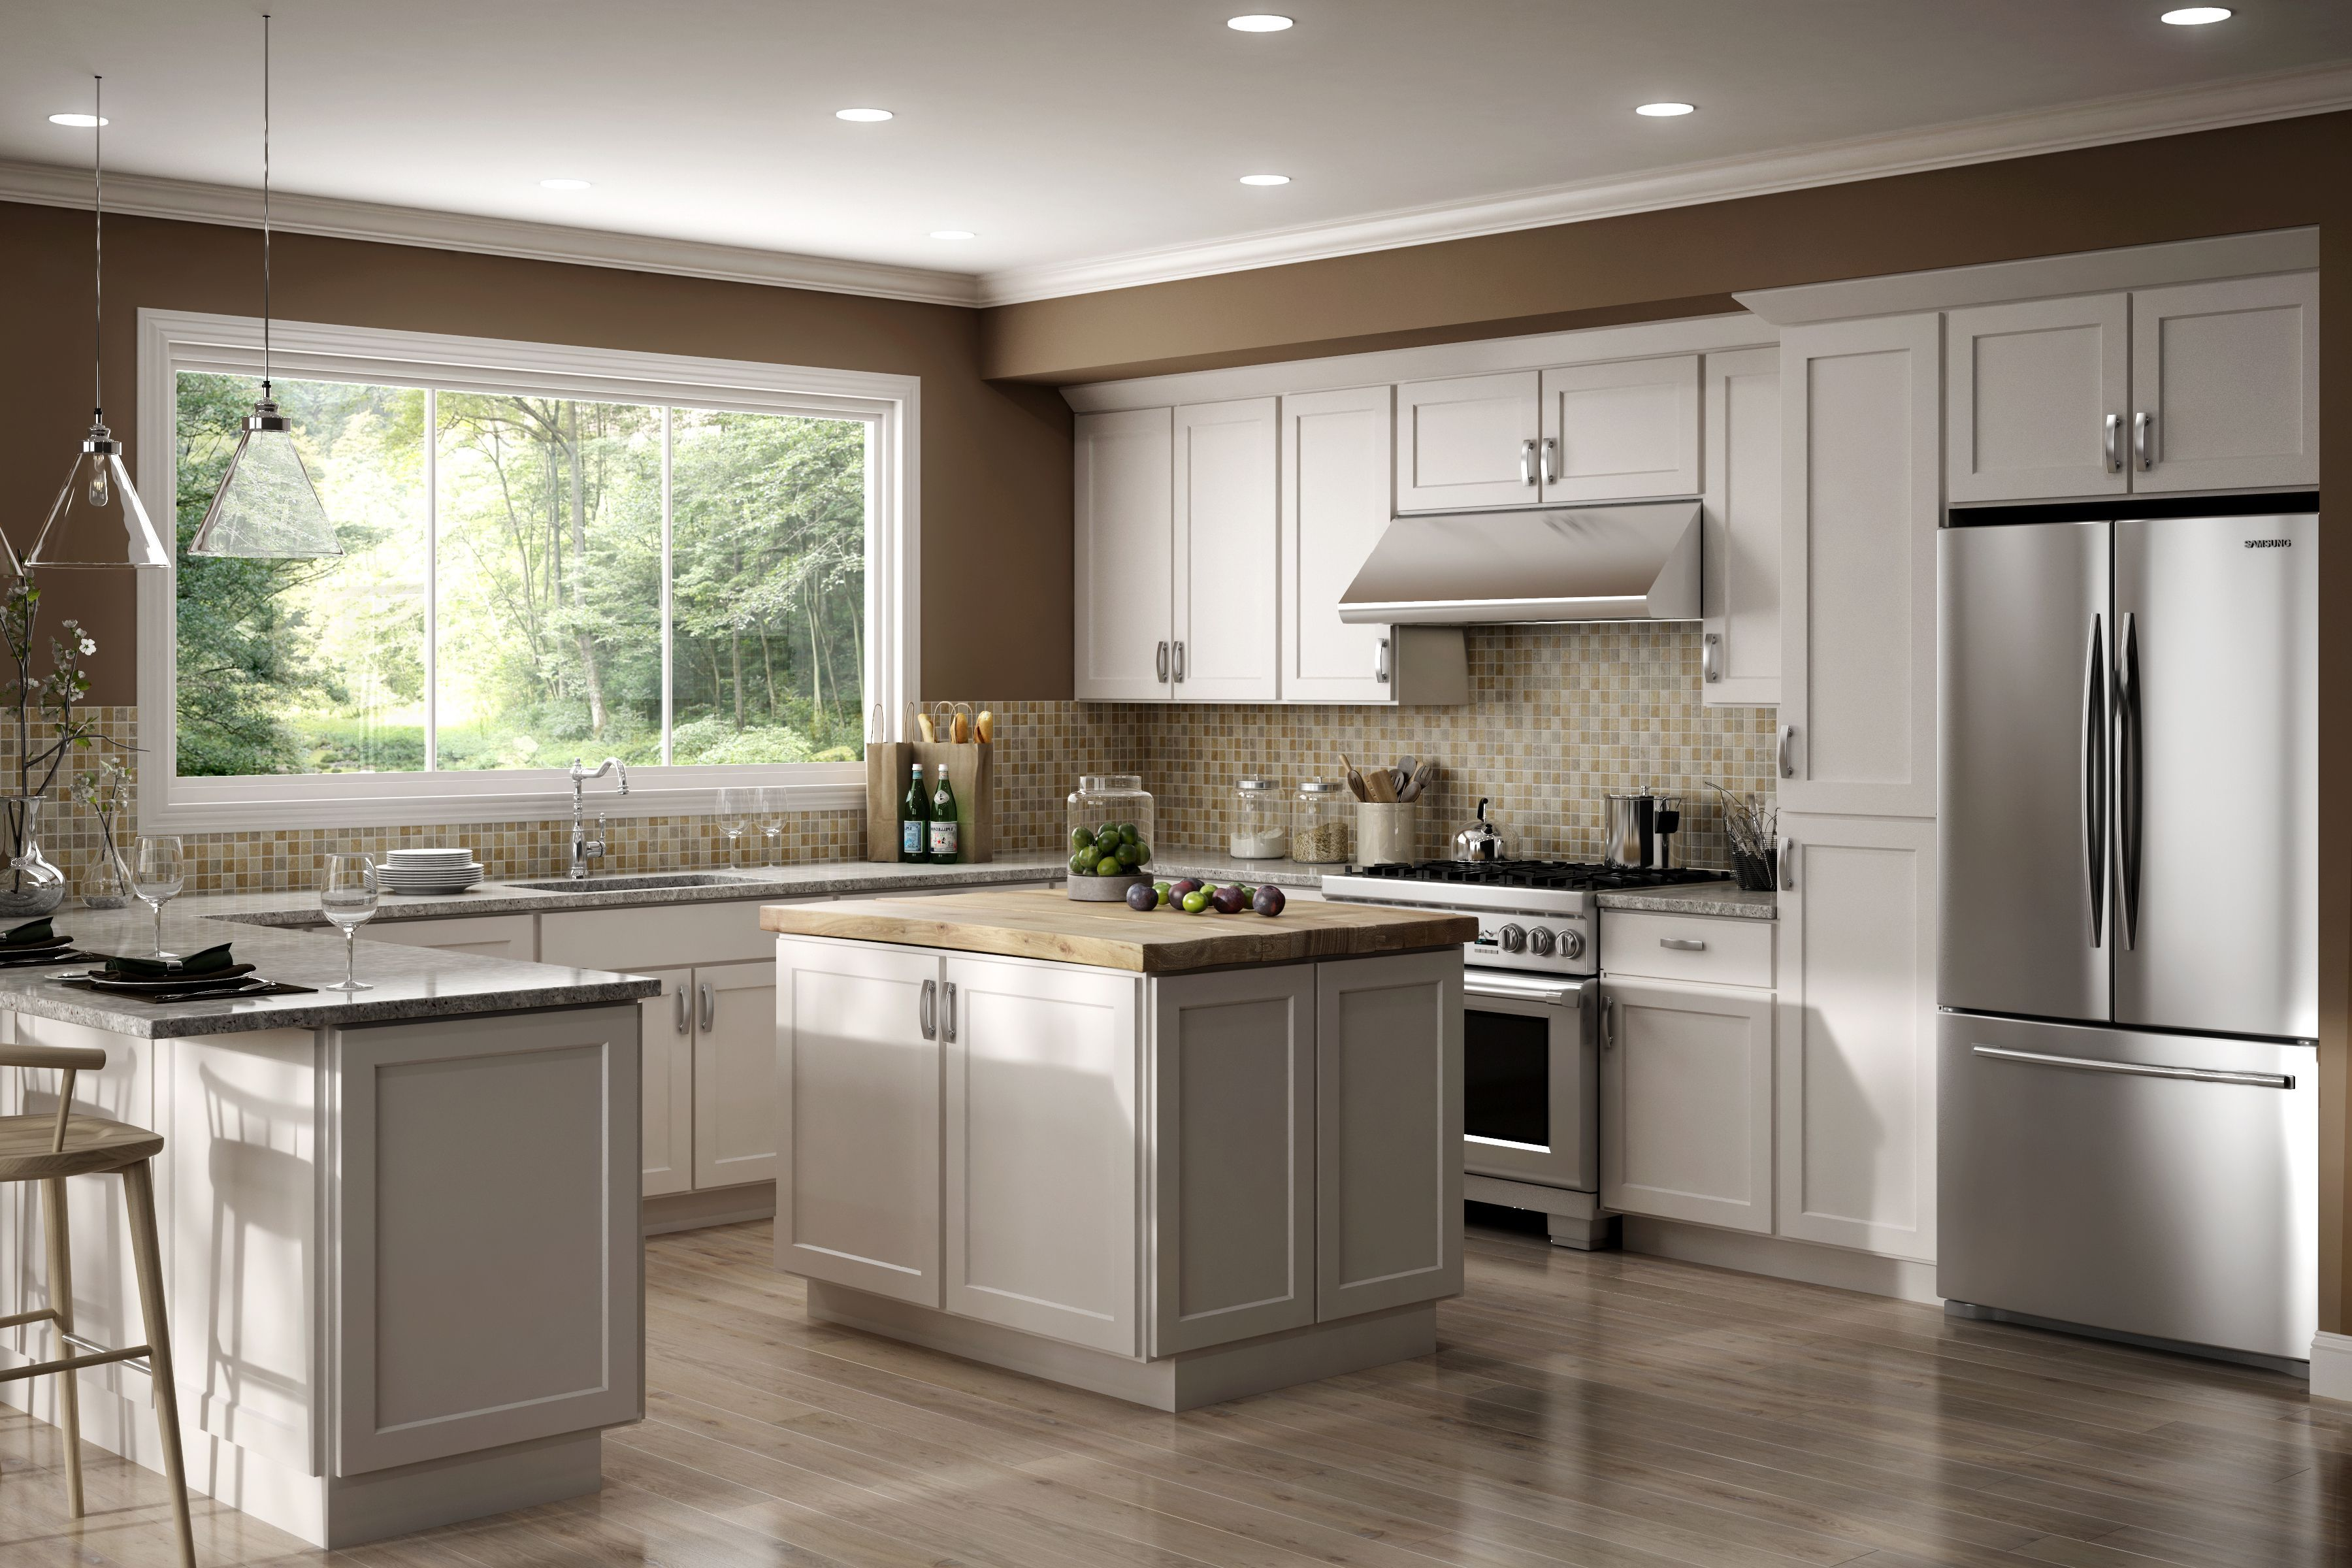 The Luxor Door Style Is Perfect For Either Traditional Or Contemporary Decor This Wide Sh Classic Kitchen Cabinets White Shaker Kitchen Kitchen Cabinet Styles